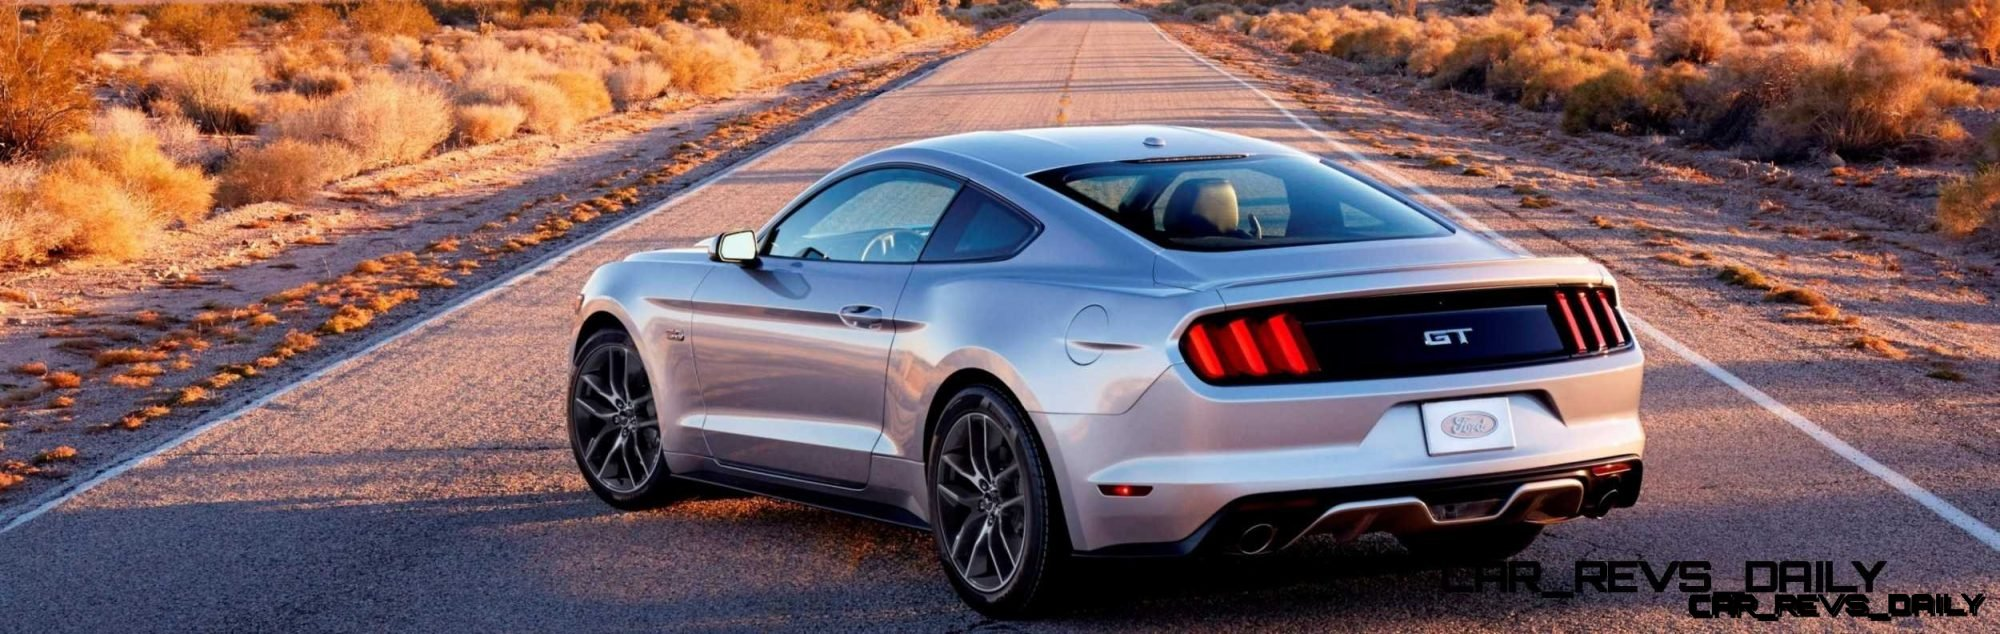 2015 ford mustang gt 5 0 roof like a porsche price like a nissan